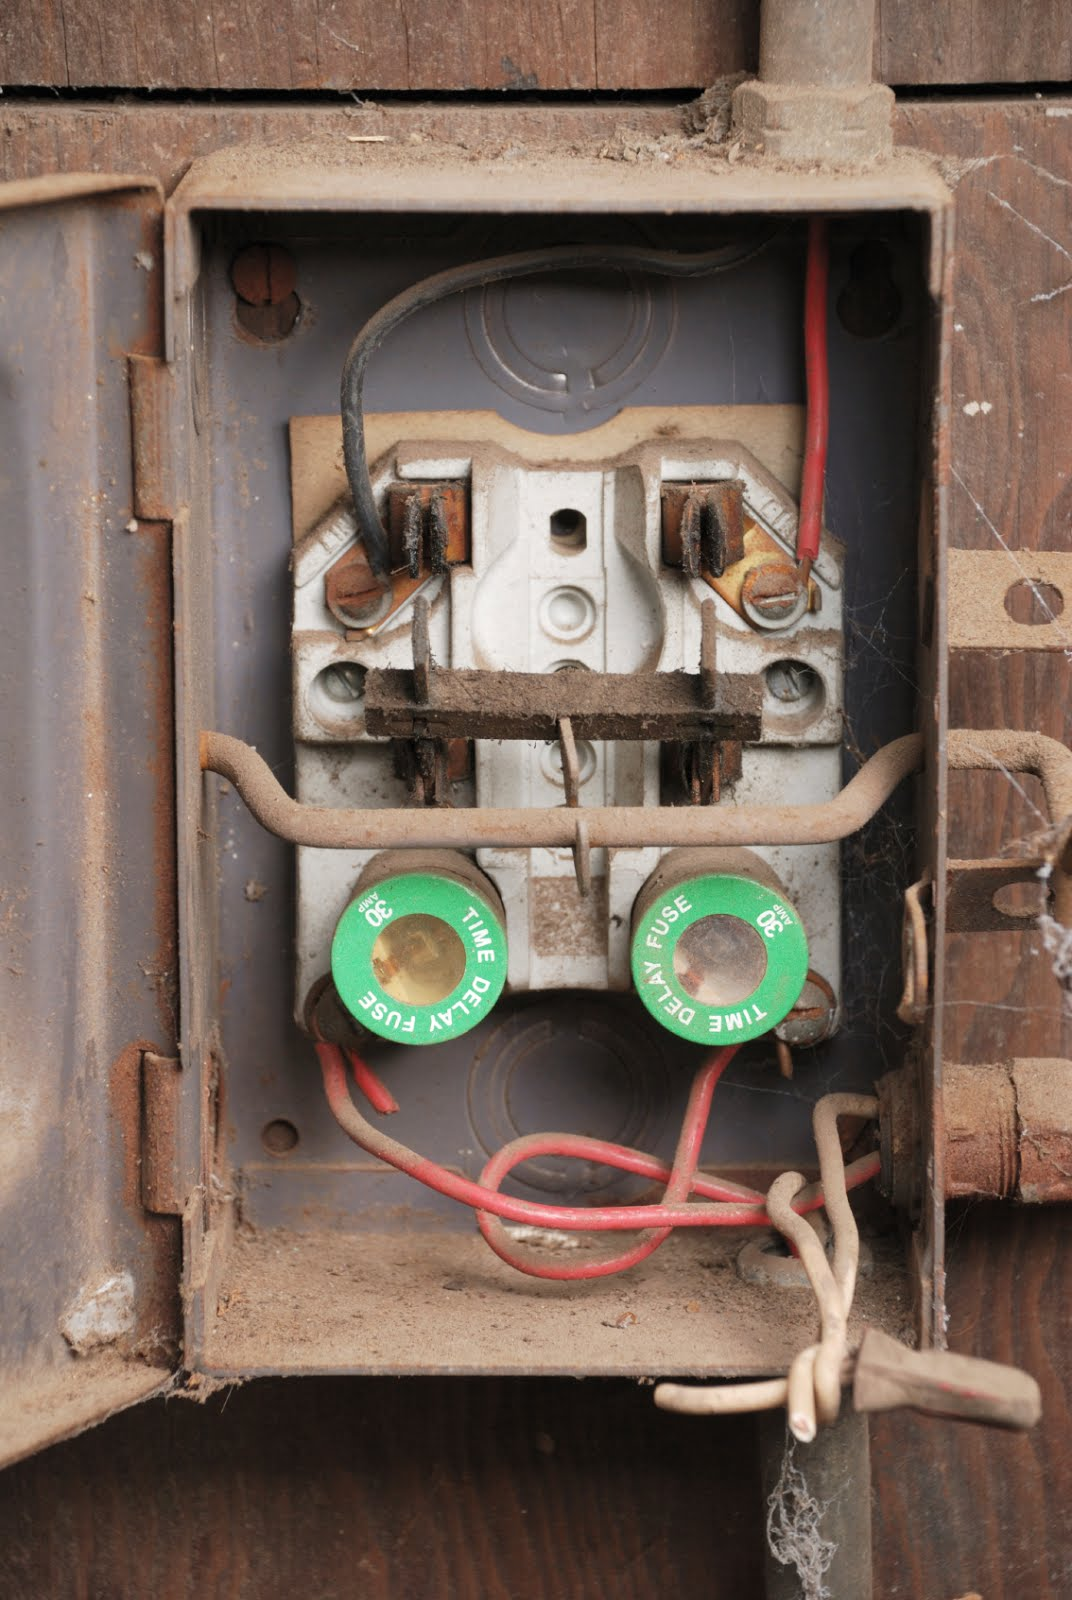 gen3 electric (215) 352 5963 the scary truth about fuse boxes blown fuse in